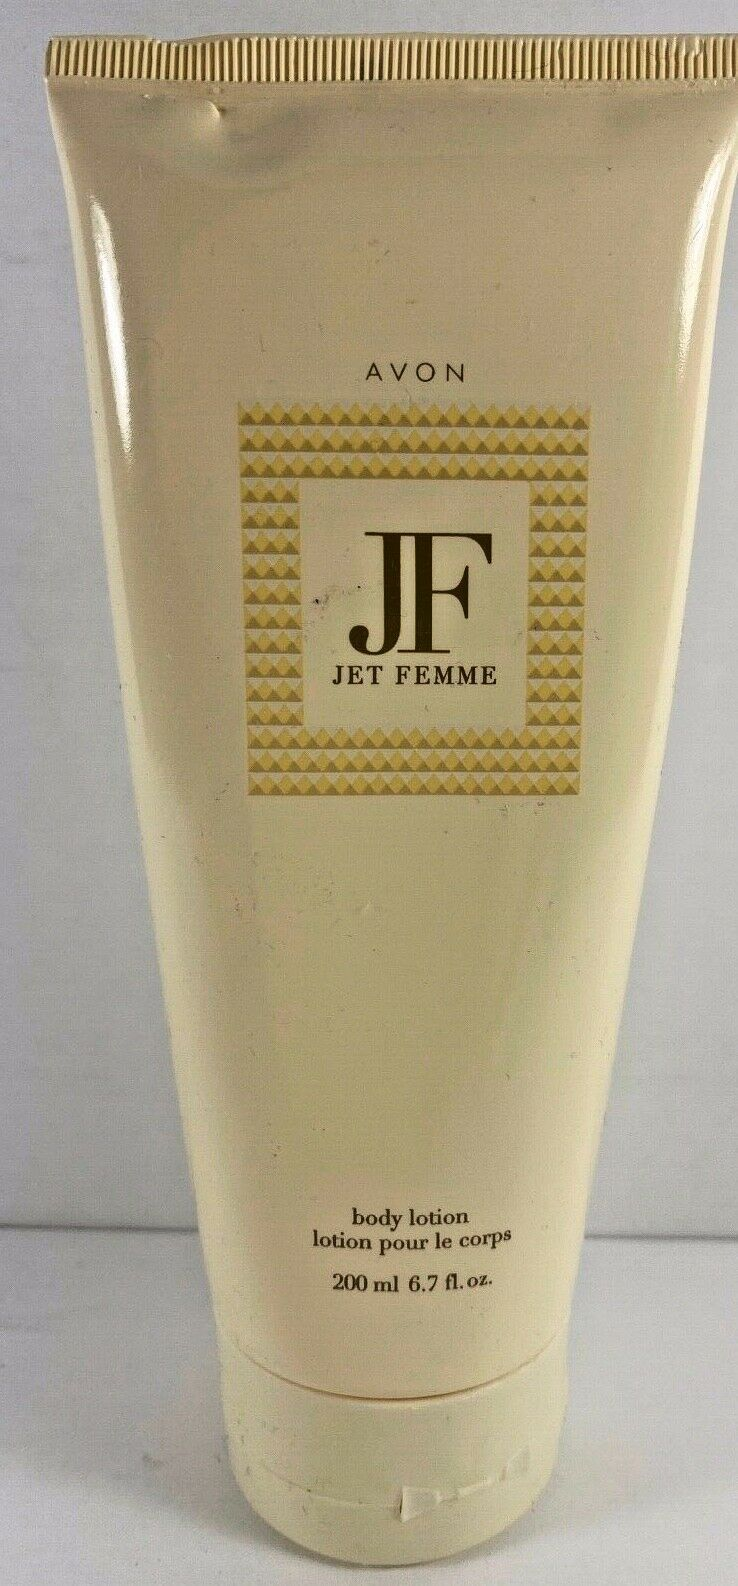 Primary image for Womans AVON JF JET FEMME BODY LOTION 6.7 fl oz